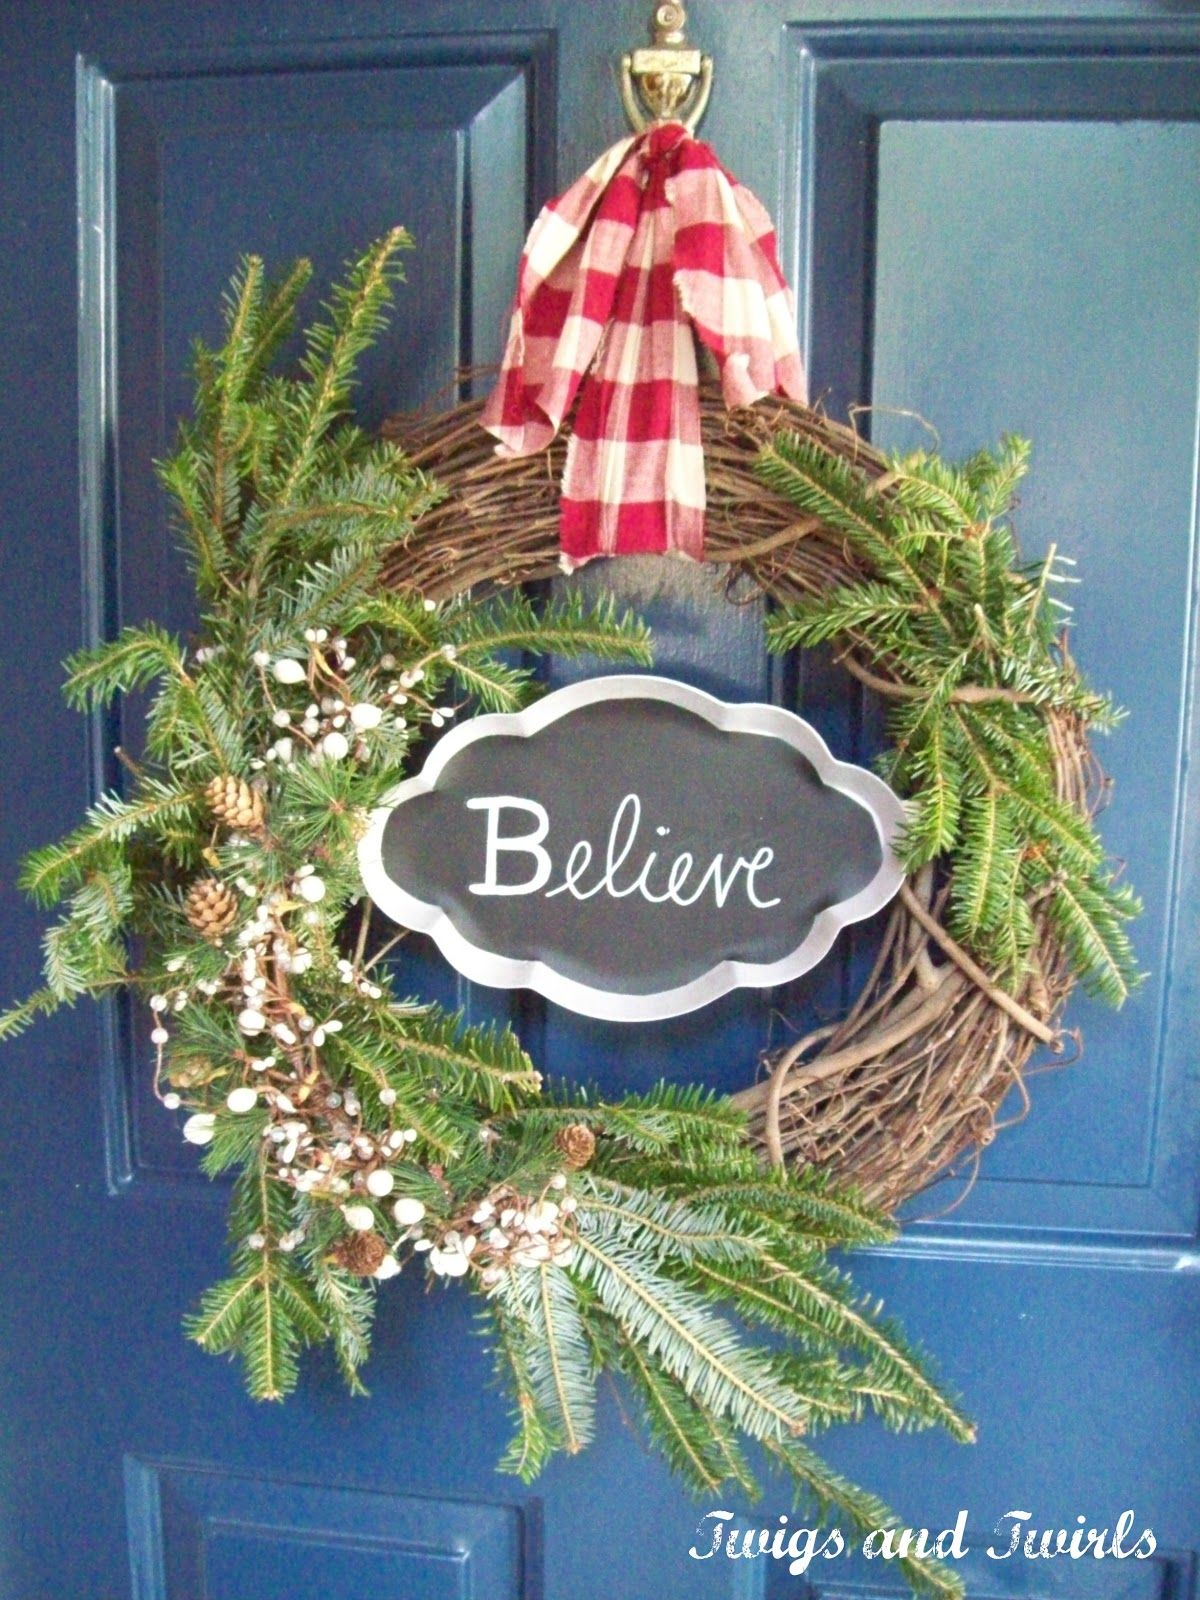 Twigs and twirls evergreen believe holiday wreath also best crafts images birthday party ideas dalmatian ts rh pinterest